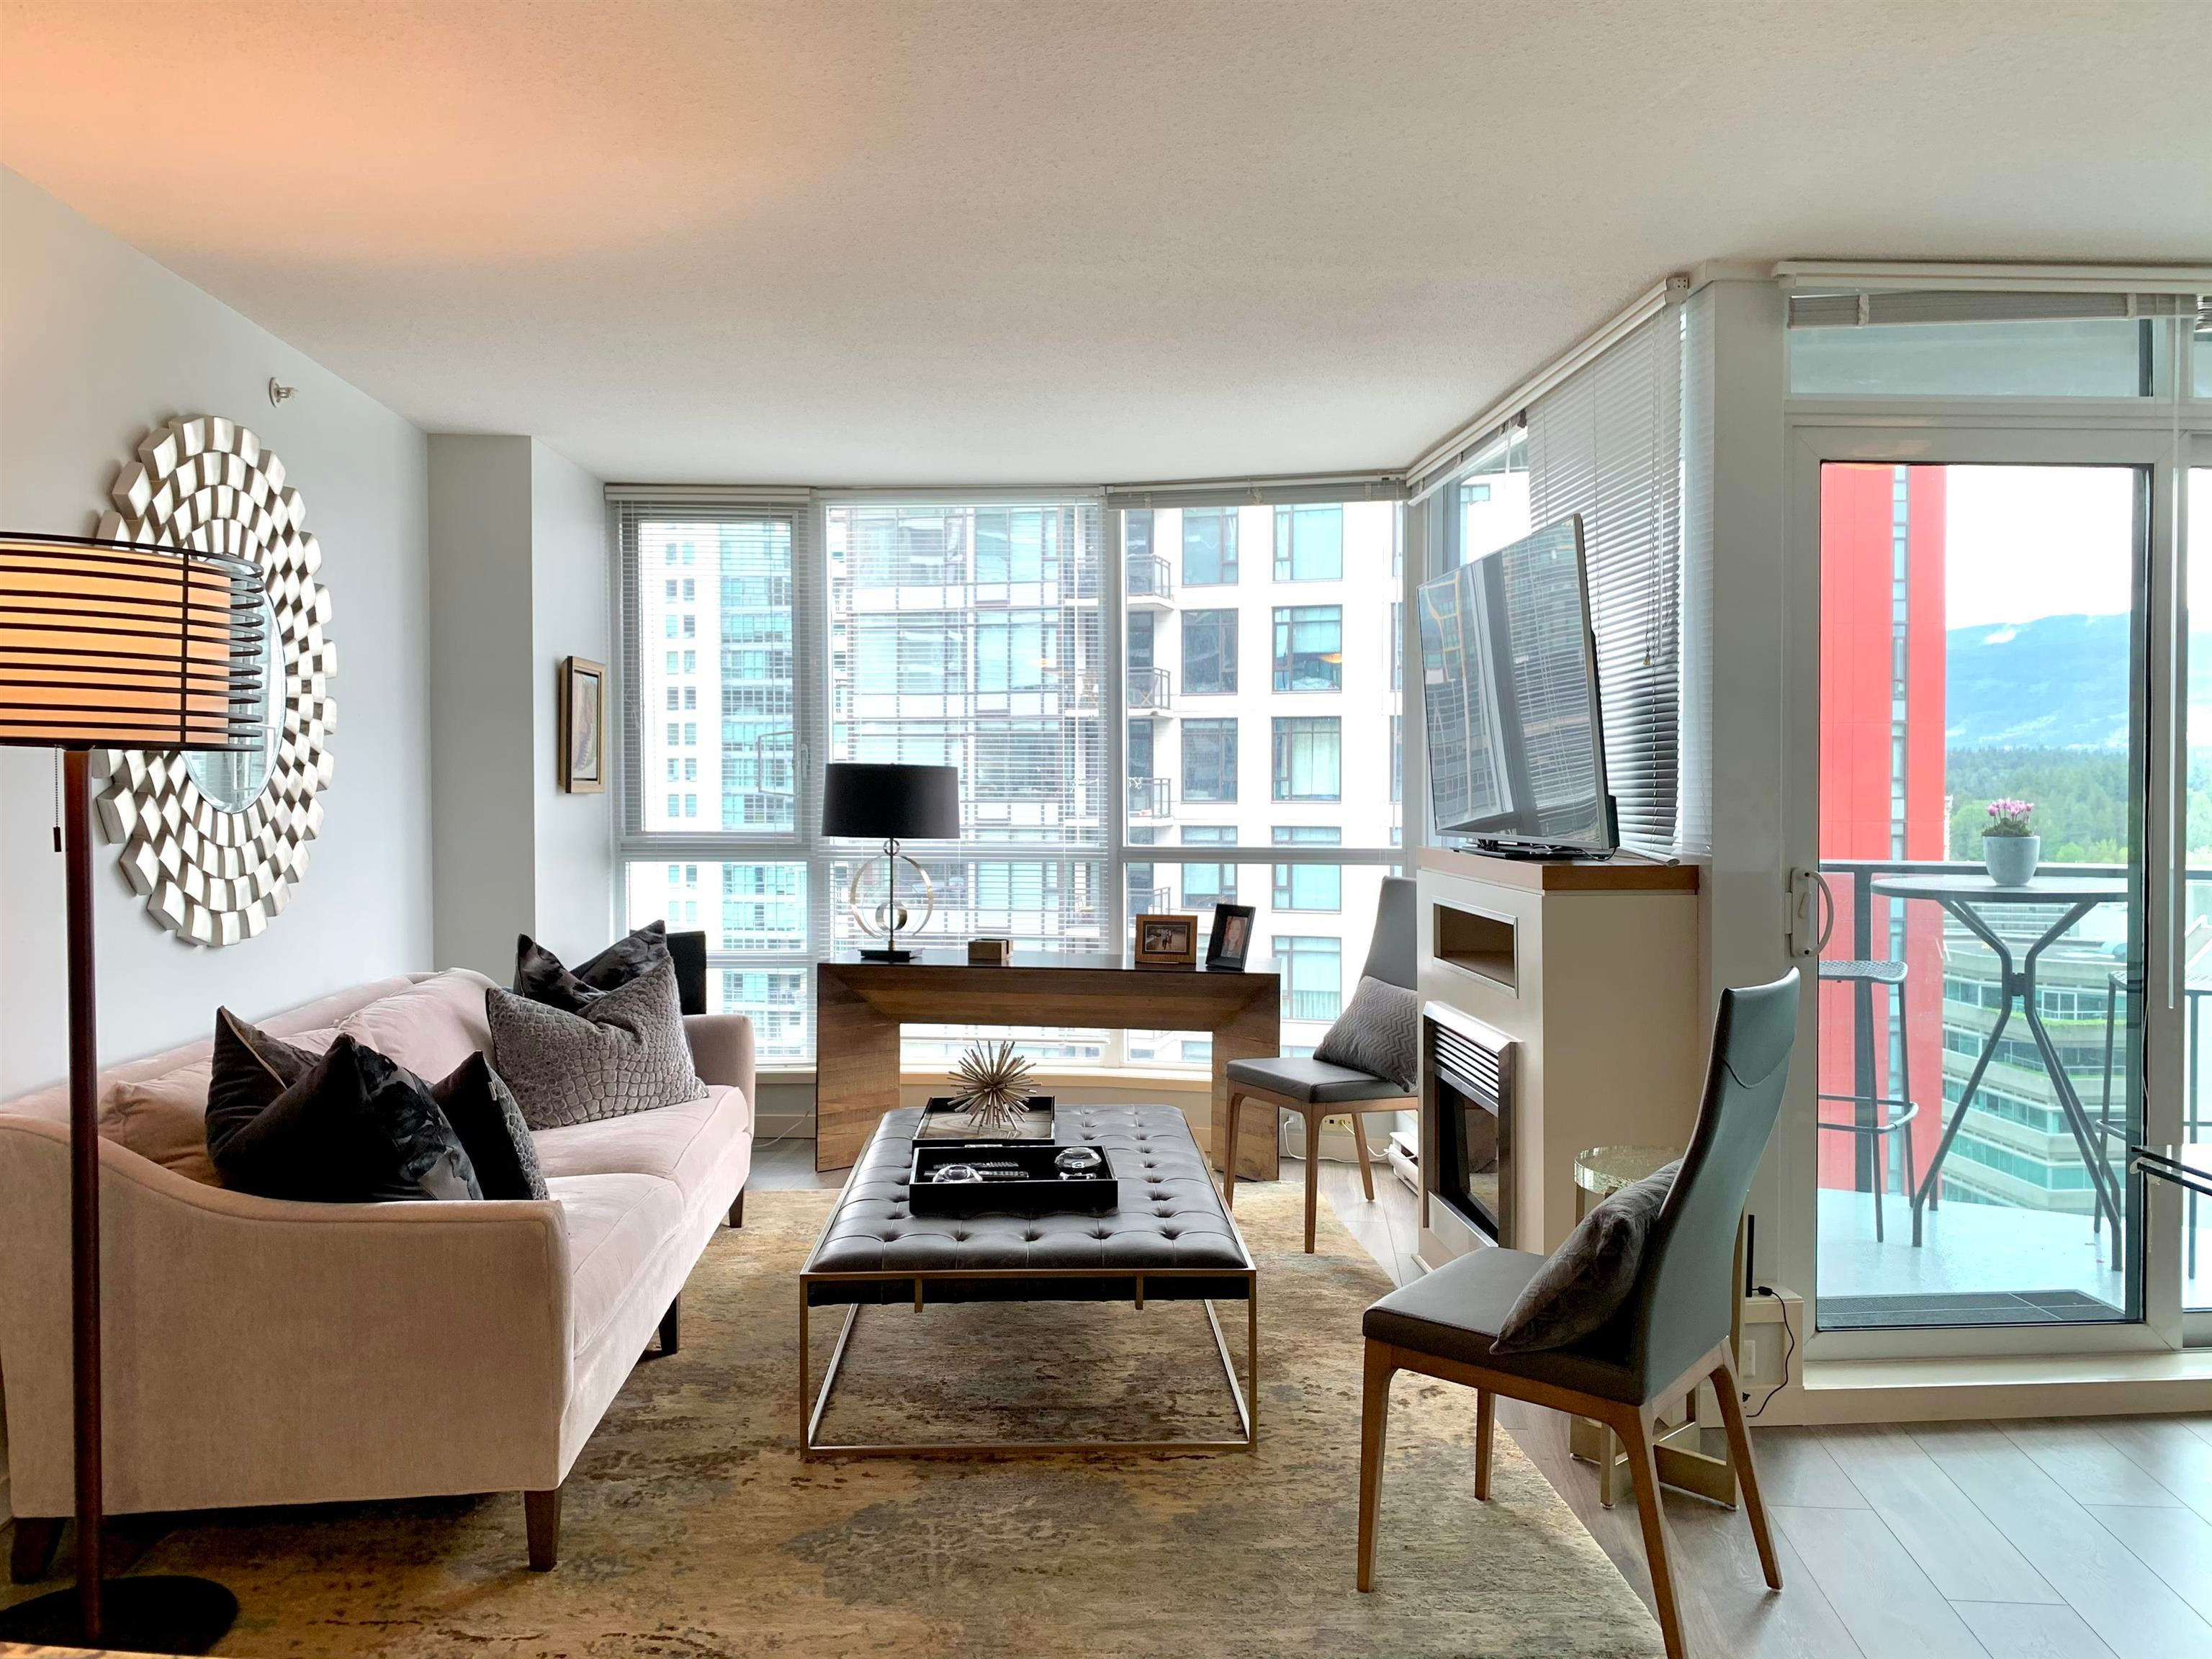 1701 1189 MELVILLE STREET - Coal Harbour Apartment/Condo for sale, 2 Bedrooms (R2617274) - #1